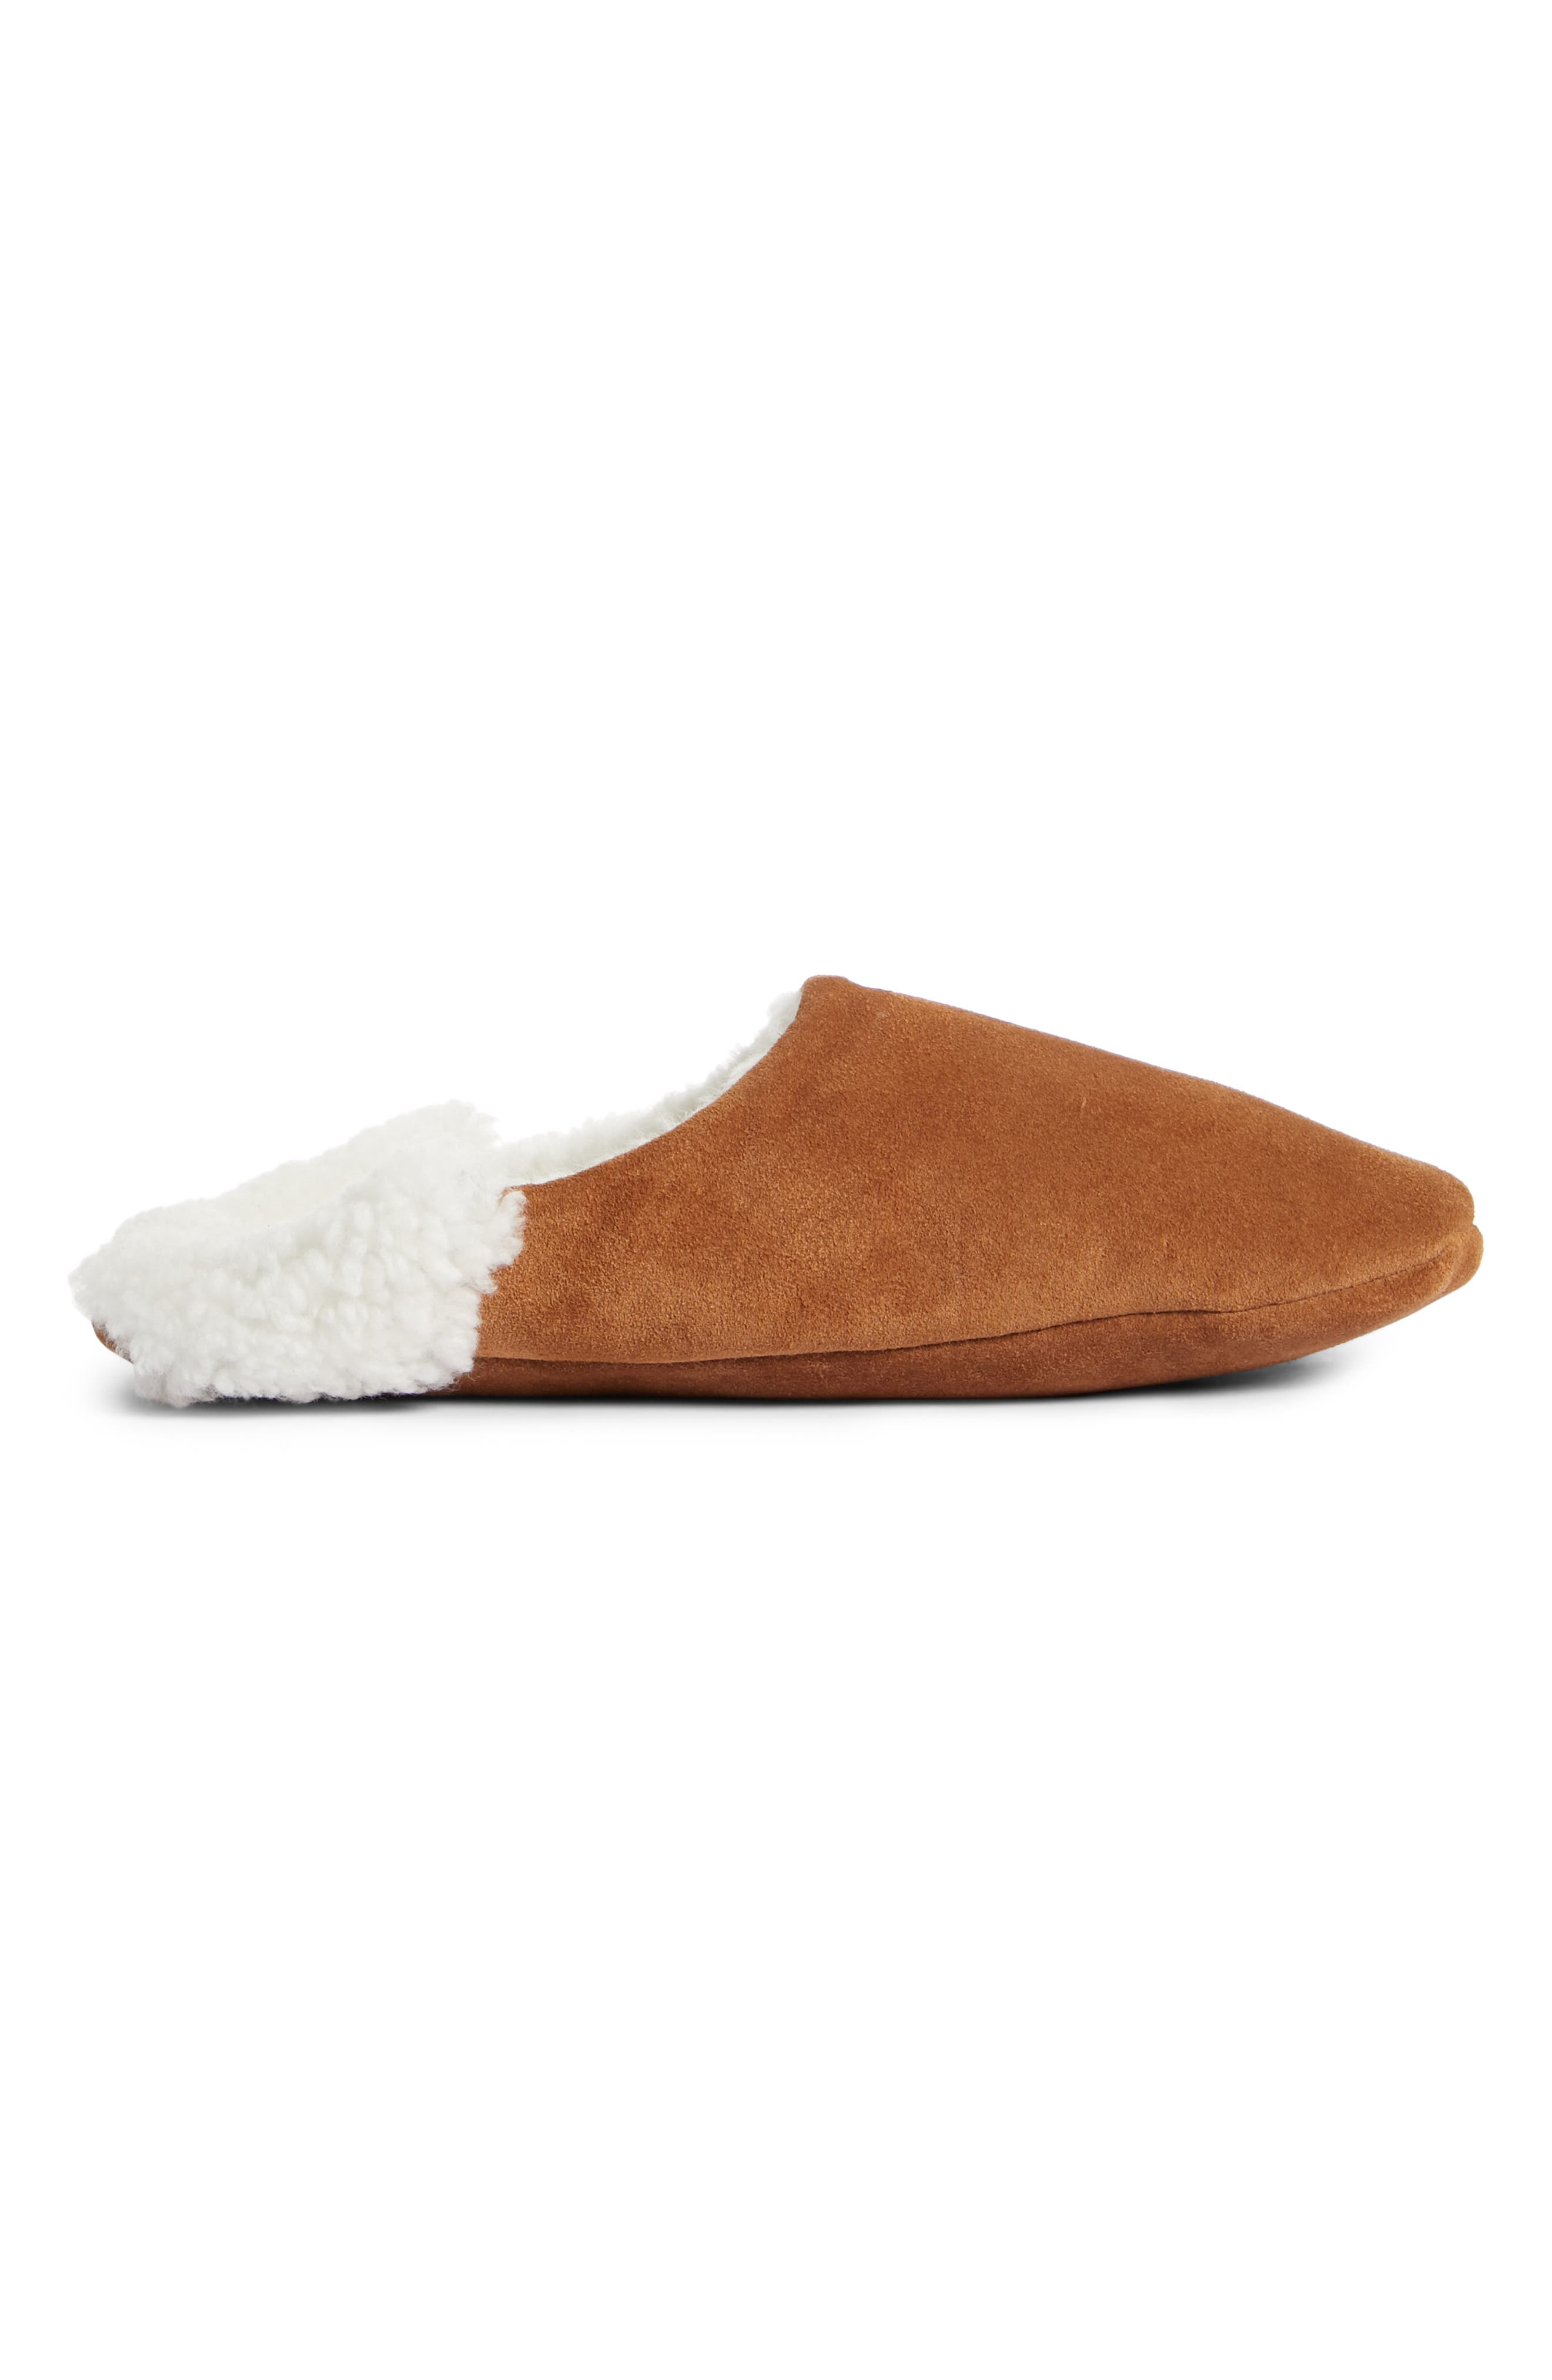 Moroccan Indoor Slipper,                             Alternate thumbnail 4, color,                             SADDLE/ IVORY